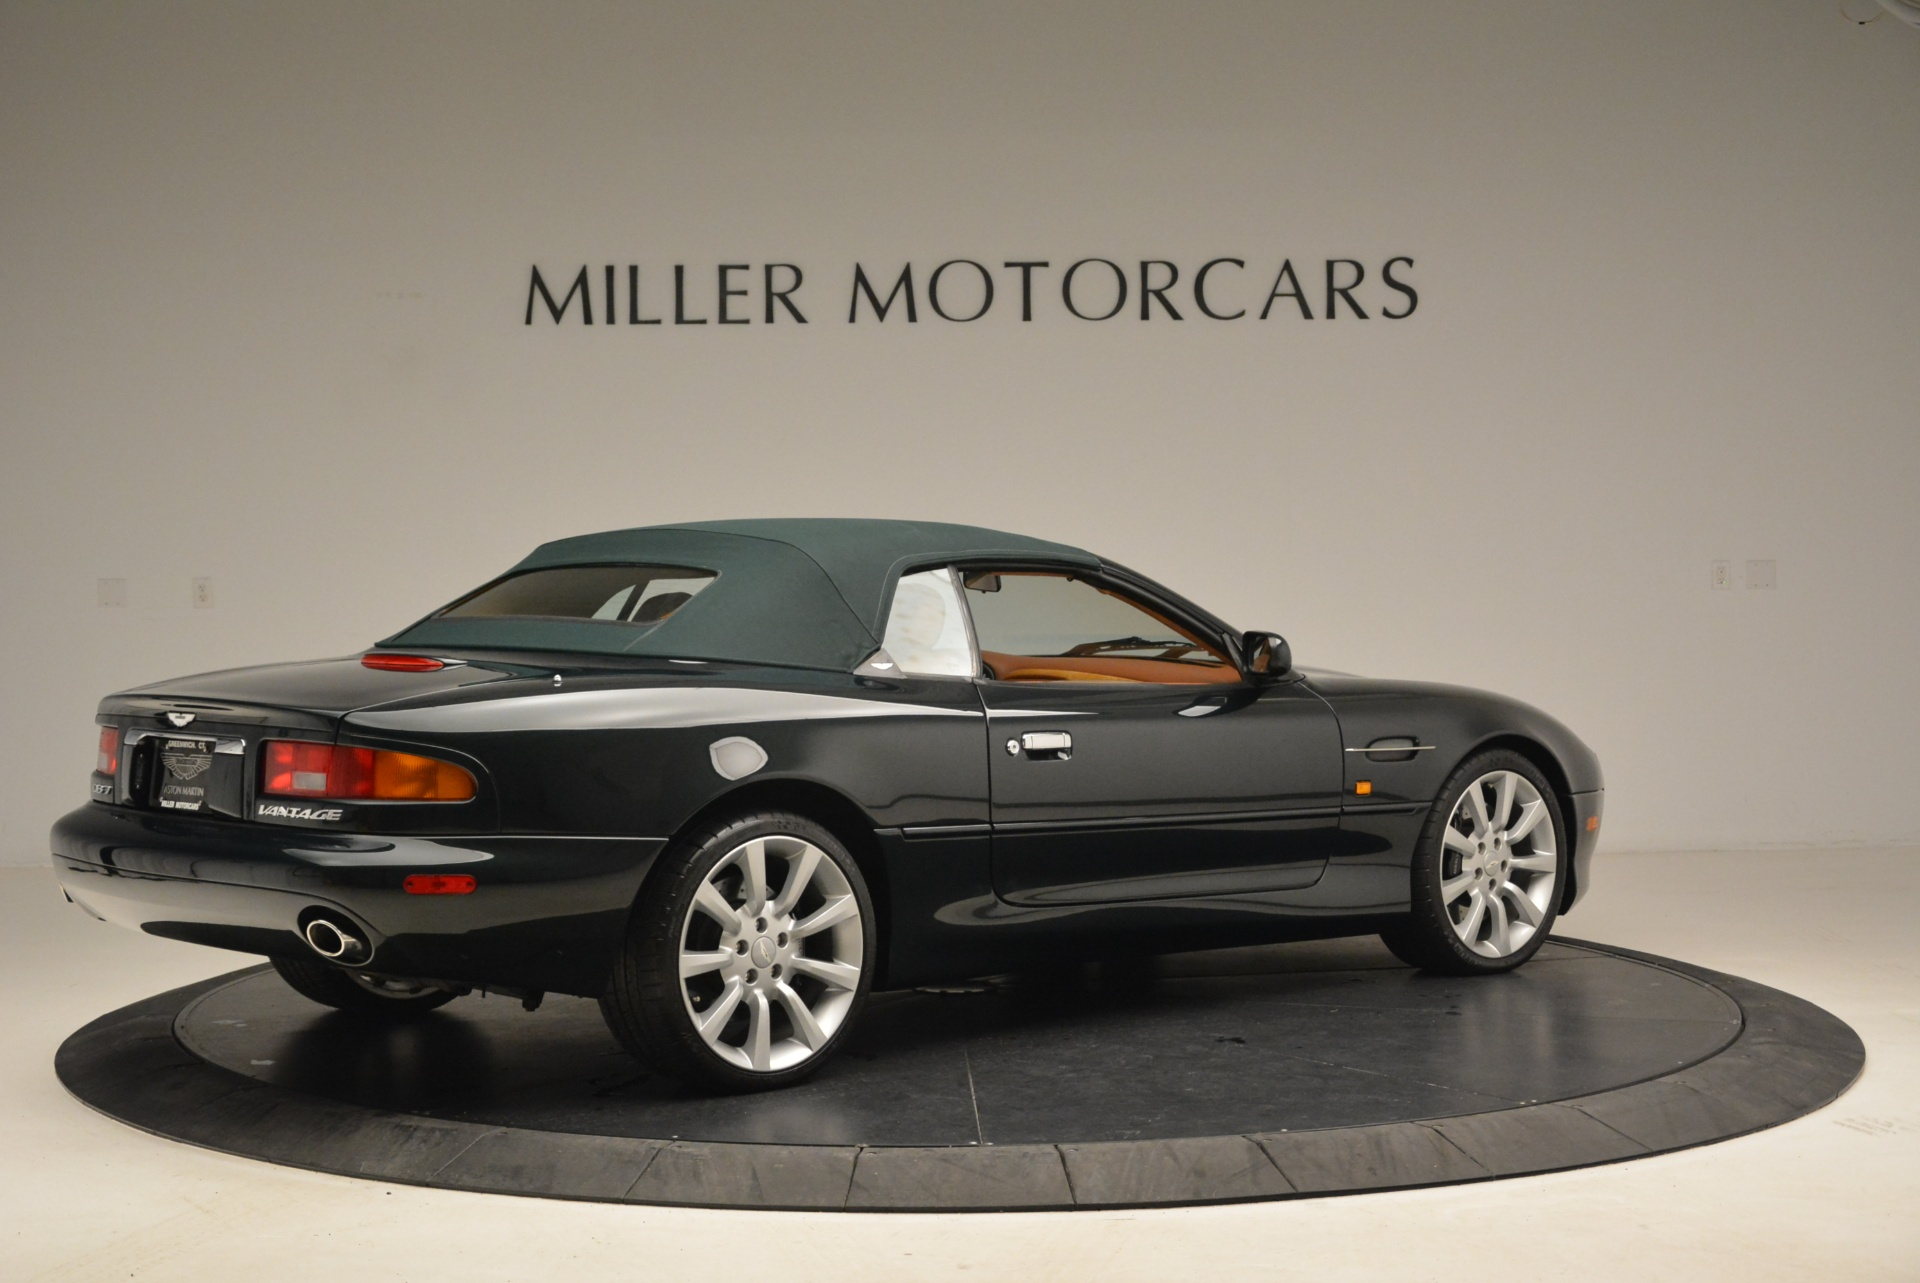 Used 2003 Aston Martin DB7 Vantage Volante For Sale In Westport, CT 2084_p20